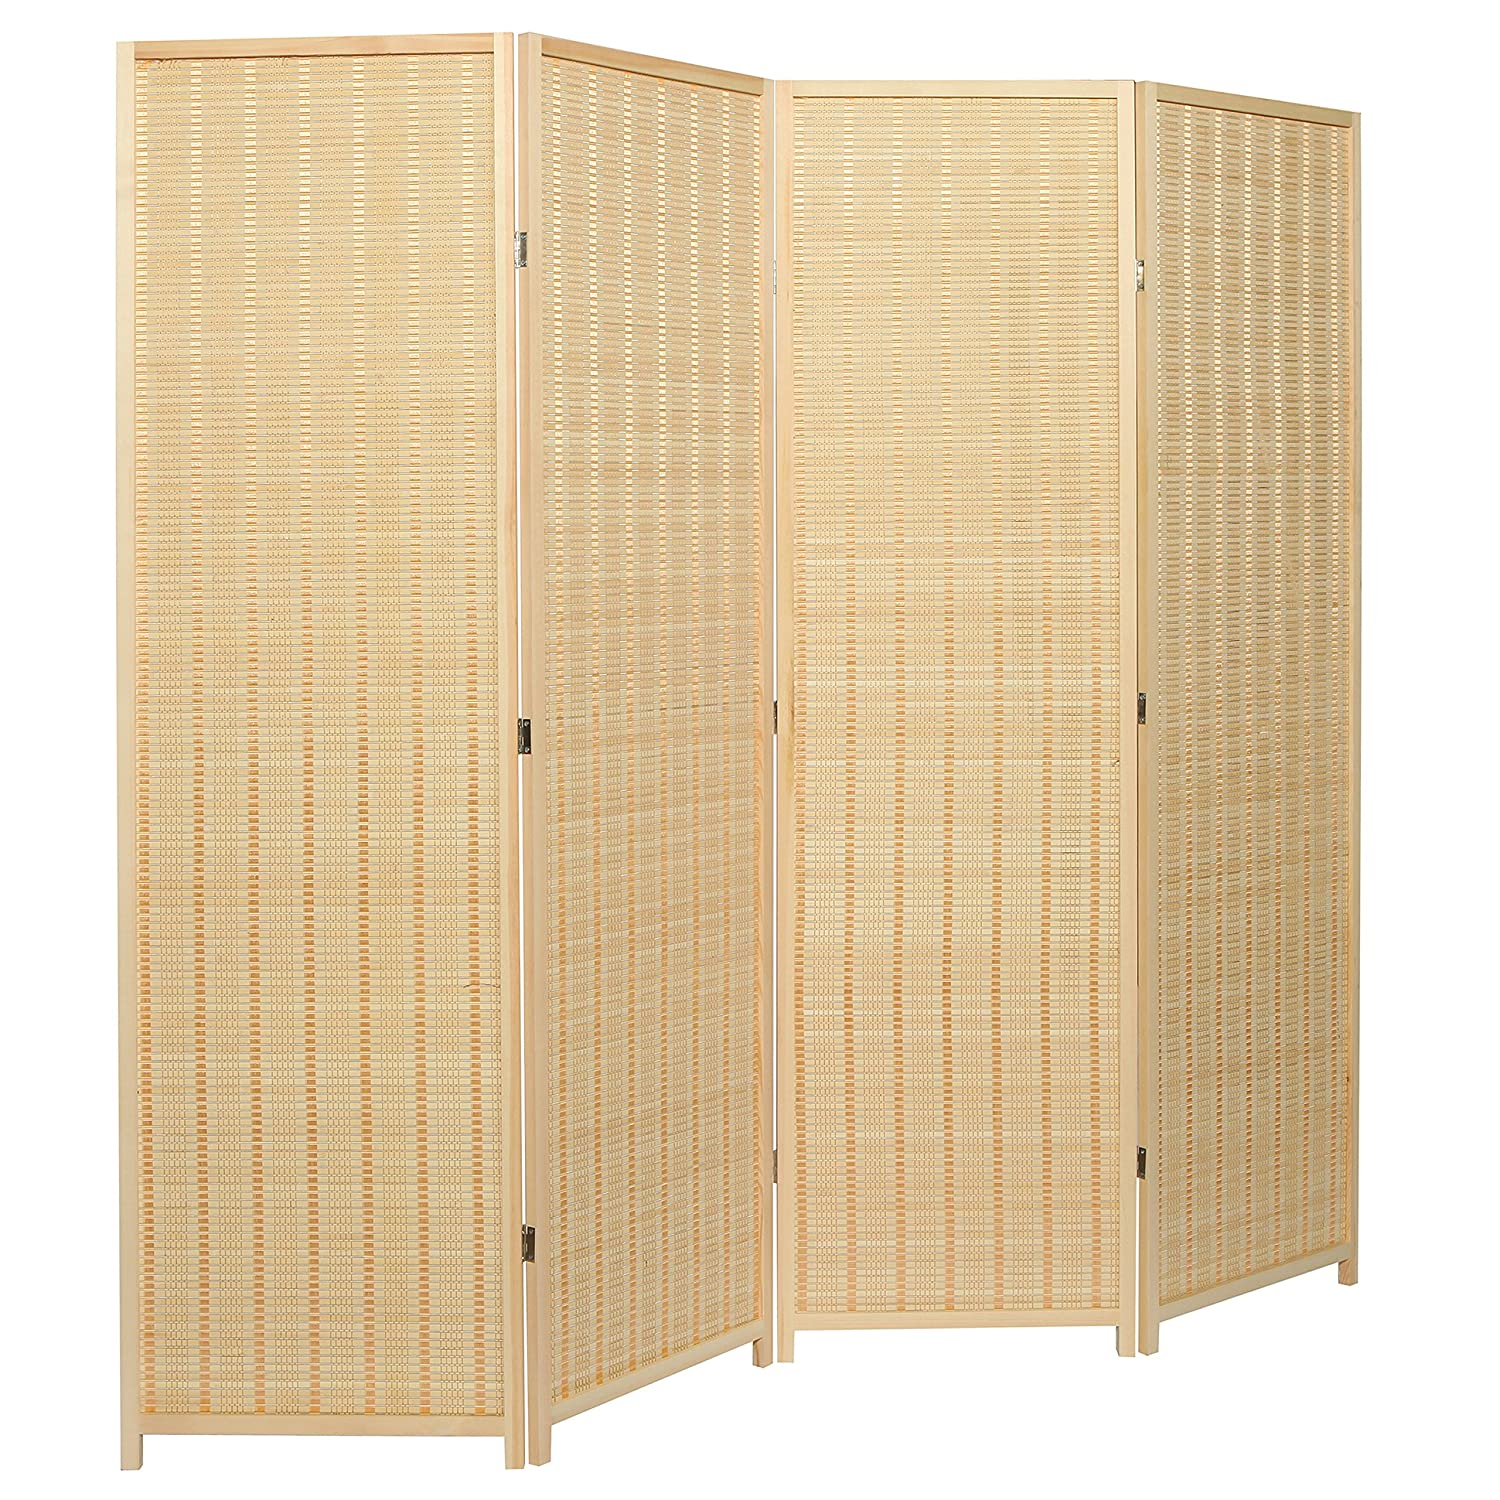 Amazon.com: Decorative Freestanding Beige Woven Bamboo 4 Panel ...